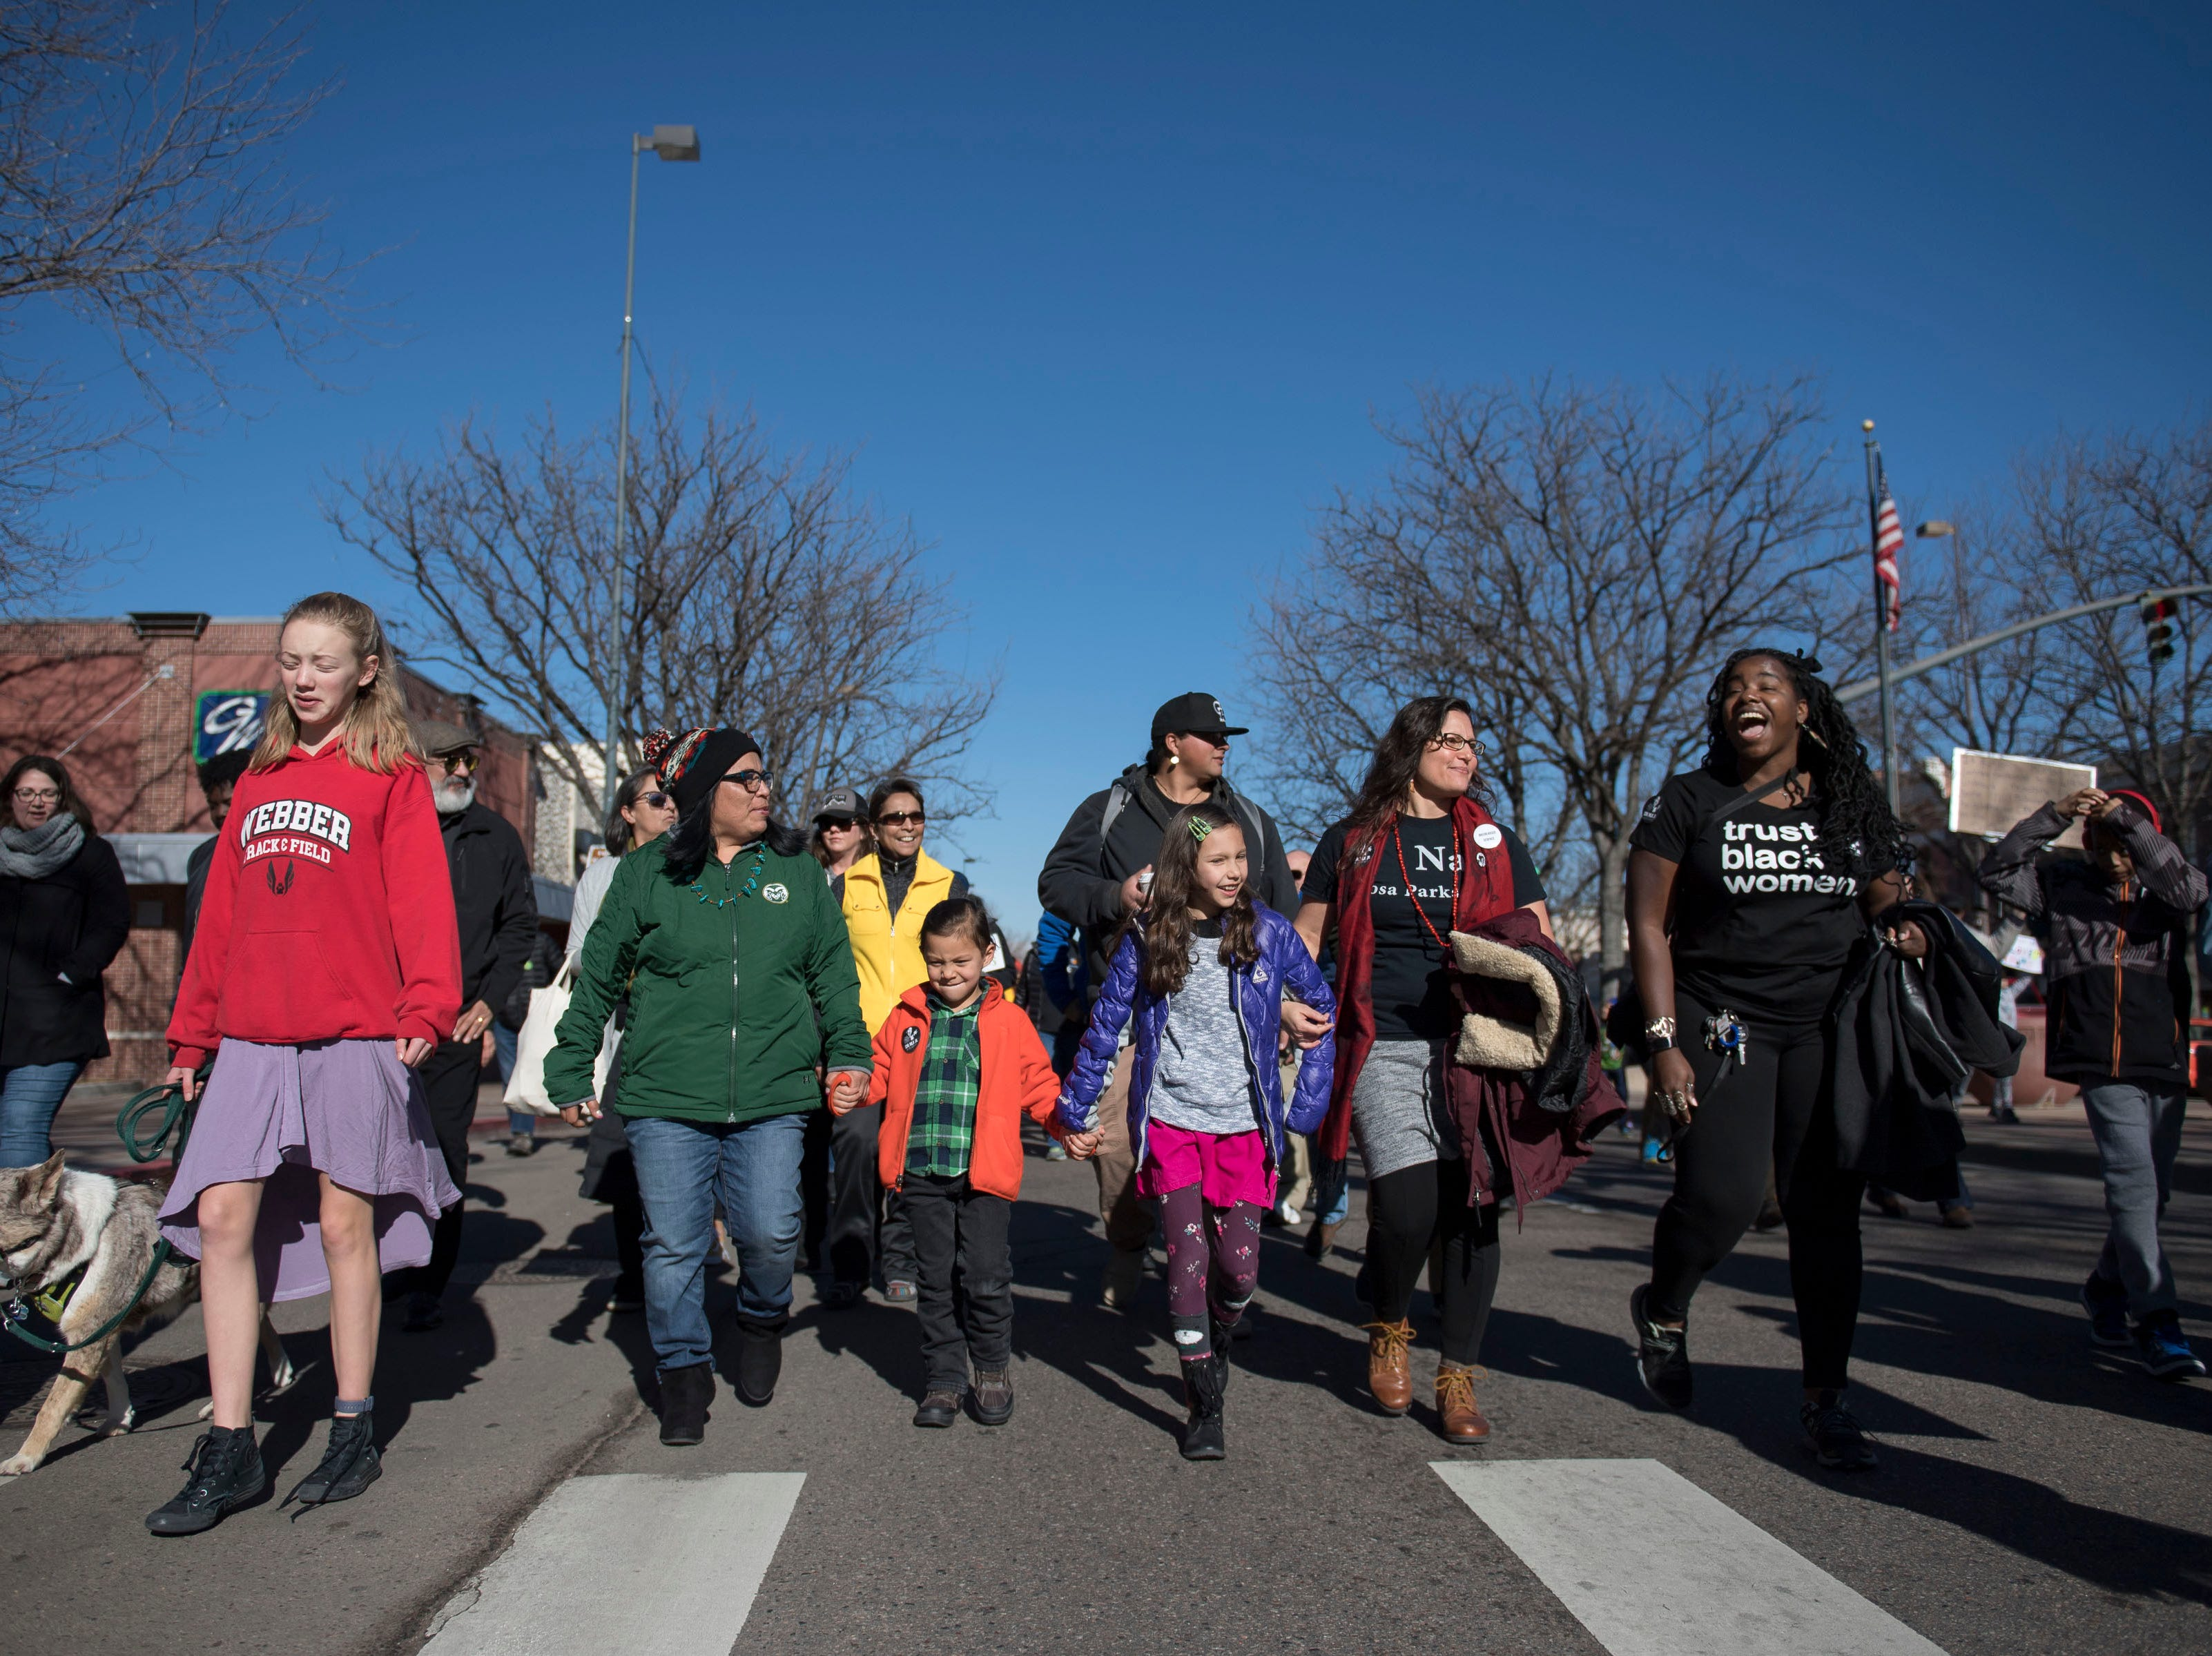 March participants head down South College Avenue during the Dr. Martin Luther King, Jr. March & Celebration on Monday, Jan. 21, 2019, in Fort Collins, Colo.